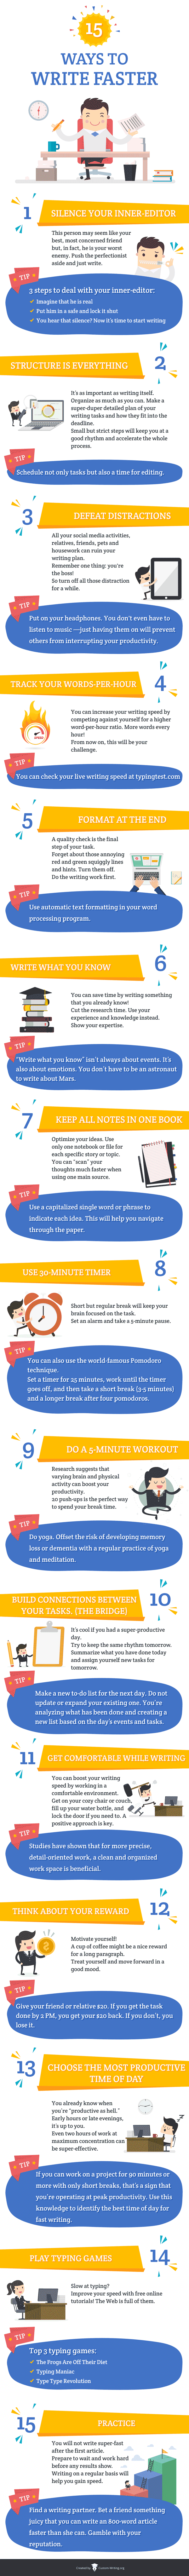 Infographic: 15 ways to write faster